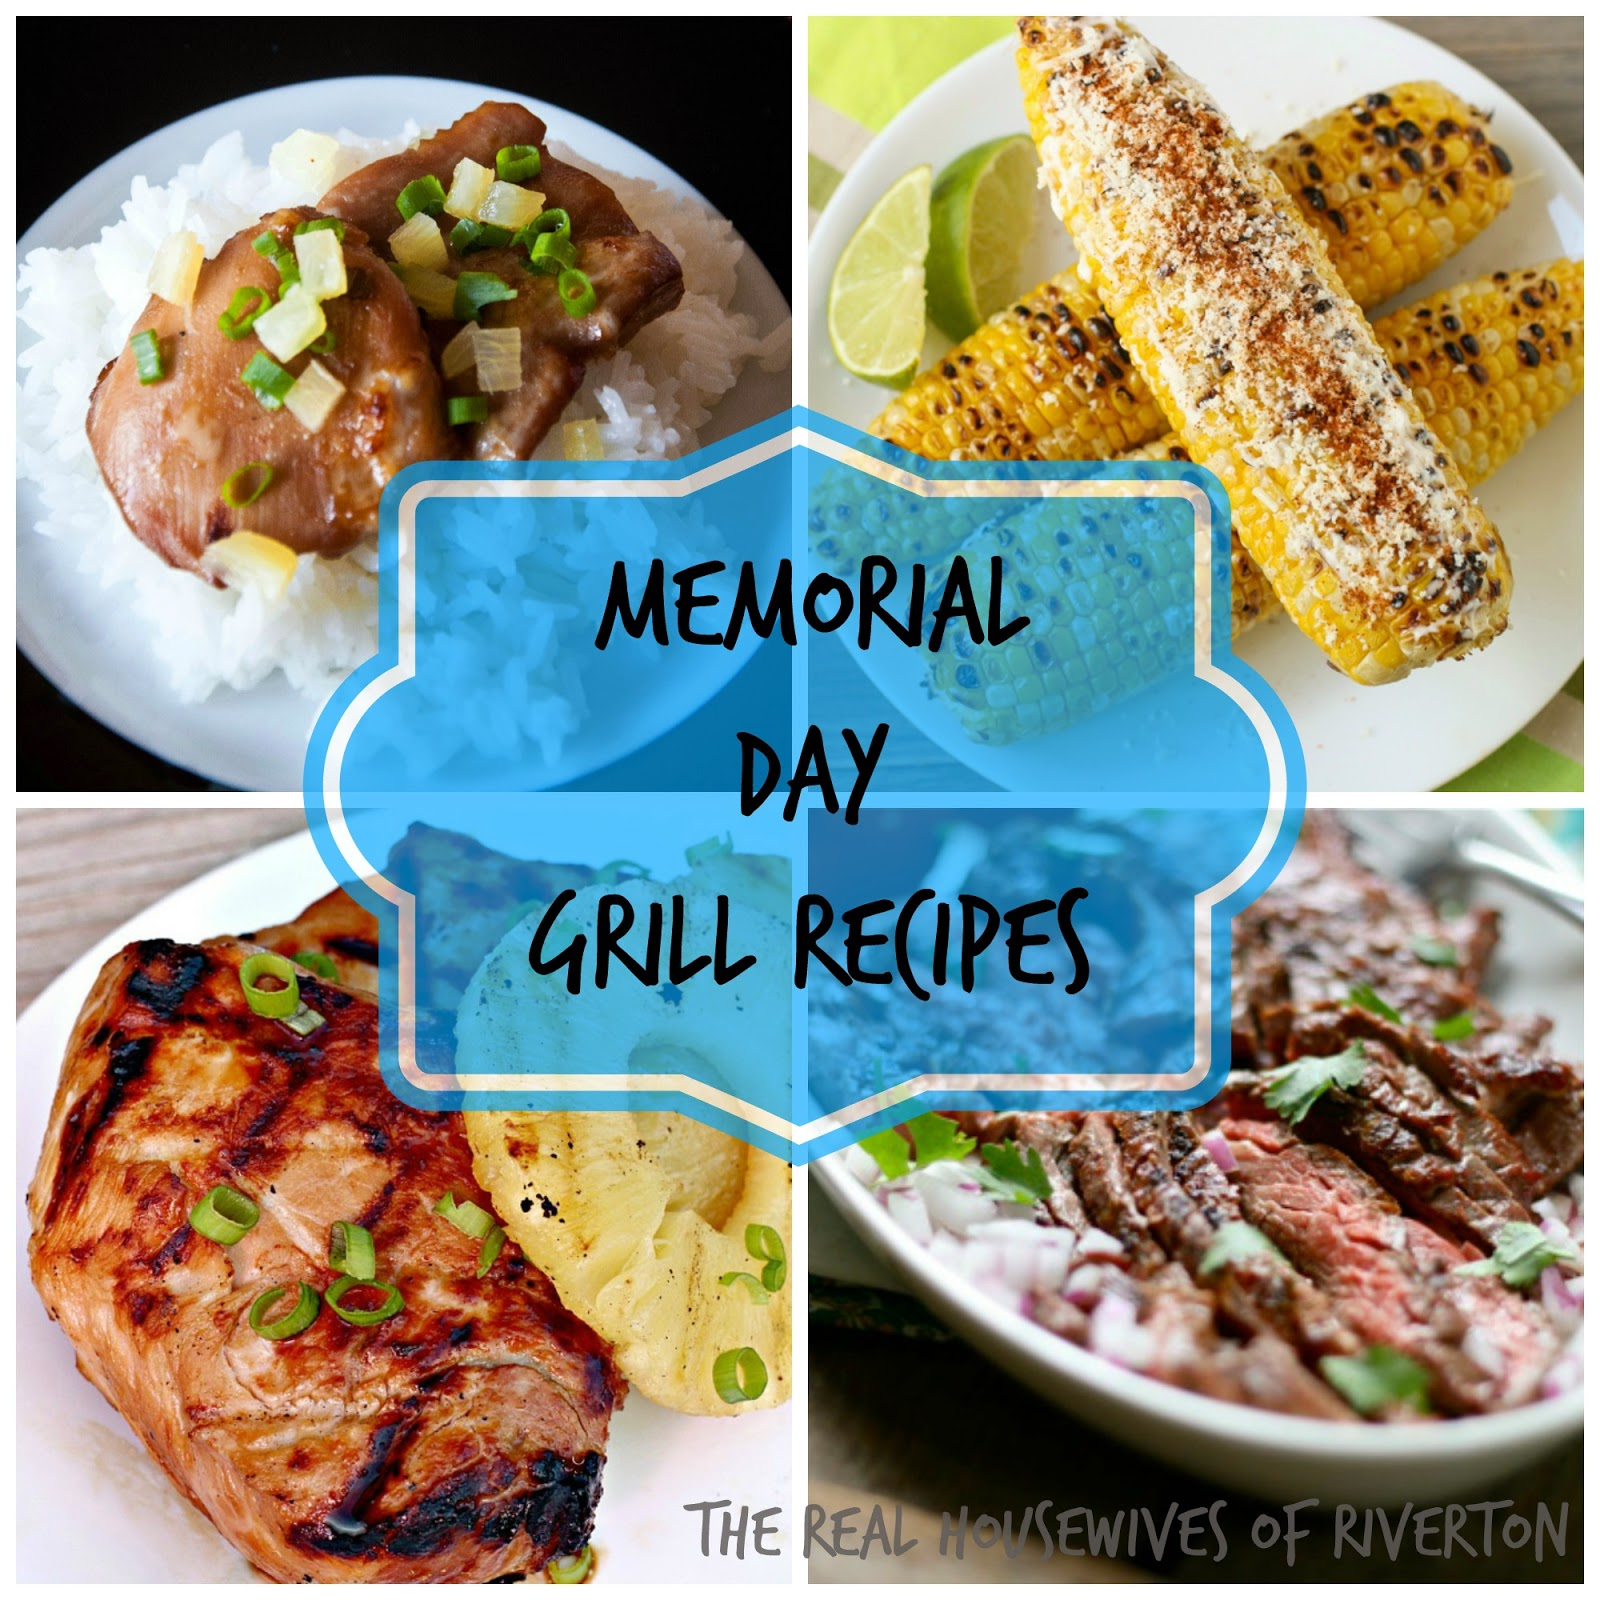 10 amazing memorial day grill recipes housewives of riverton